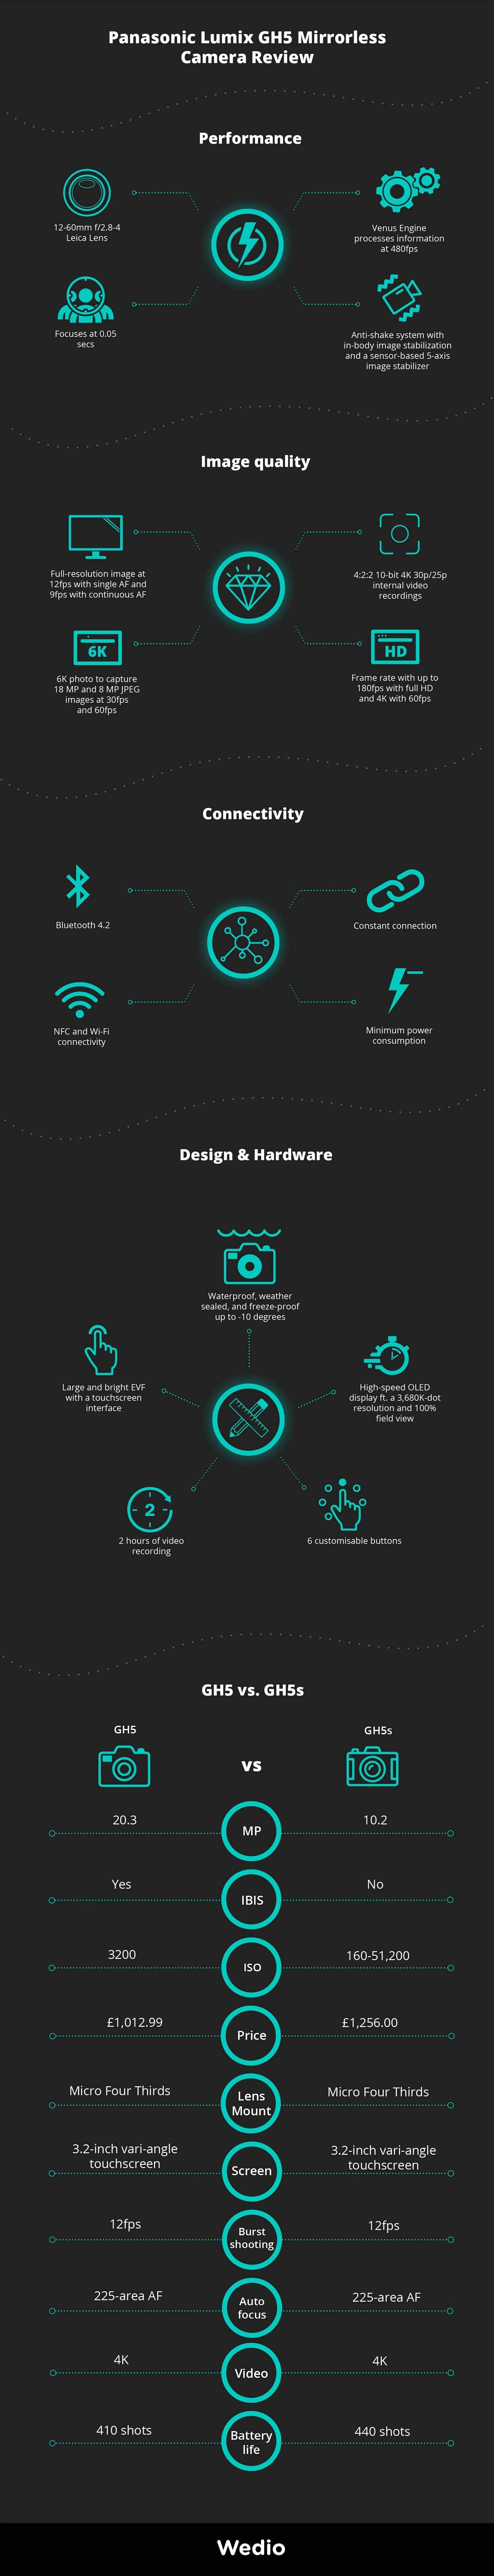 Infographics summary: GH5 review update, GH5 performance, GH5 image quality, GH5 connectivity, GH% design and hardware. Comparison between GH5 and GH5s